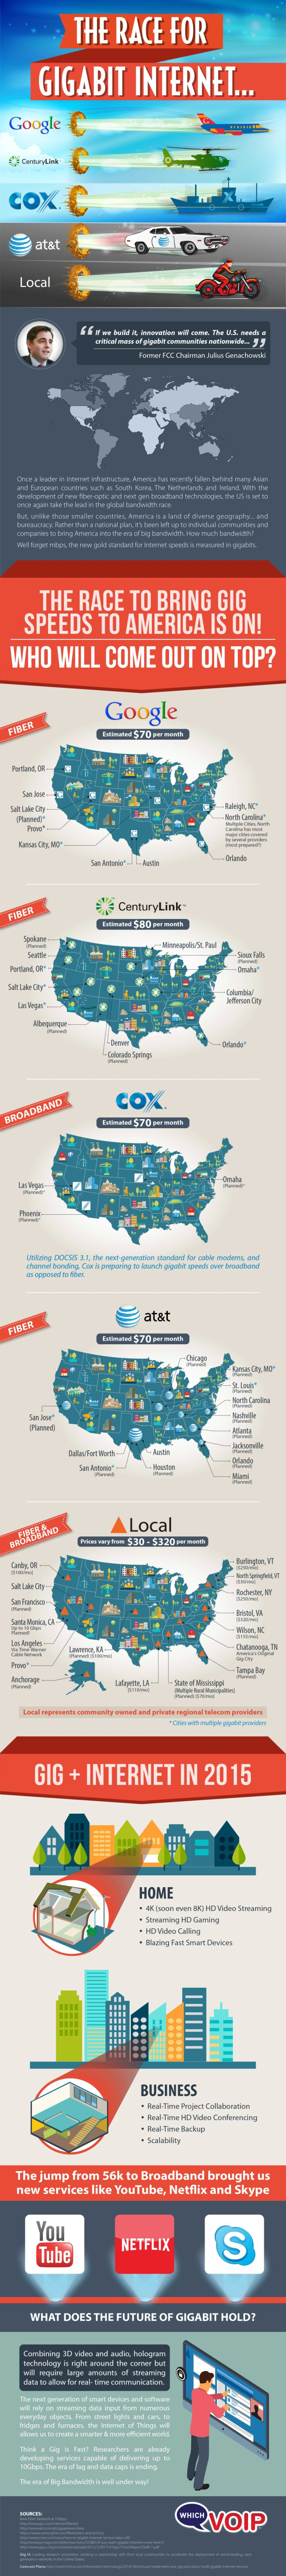 gigabit_internet_infographic_770x6941